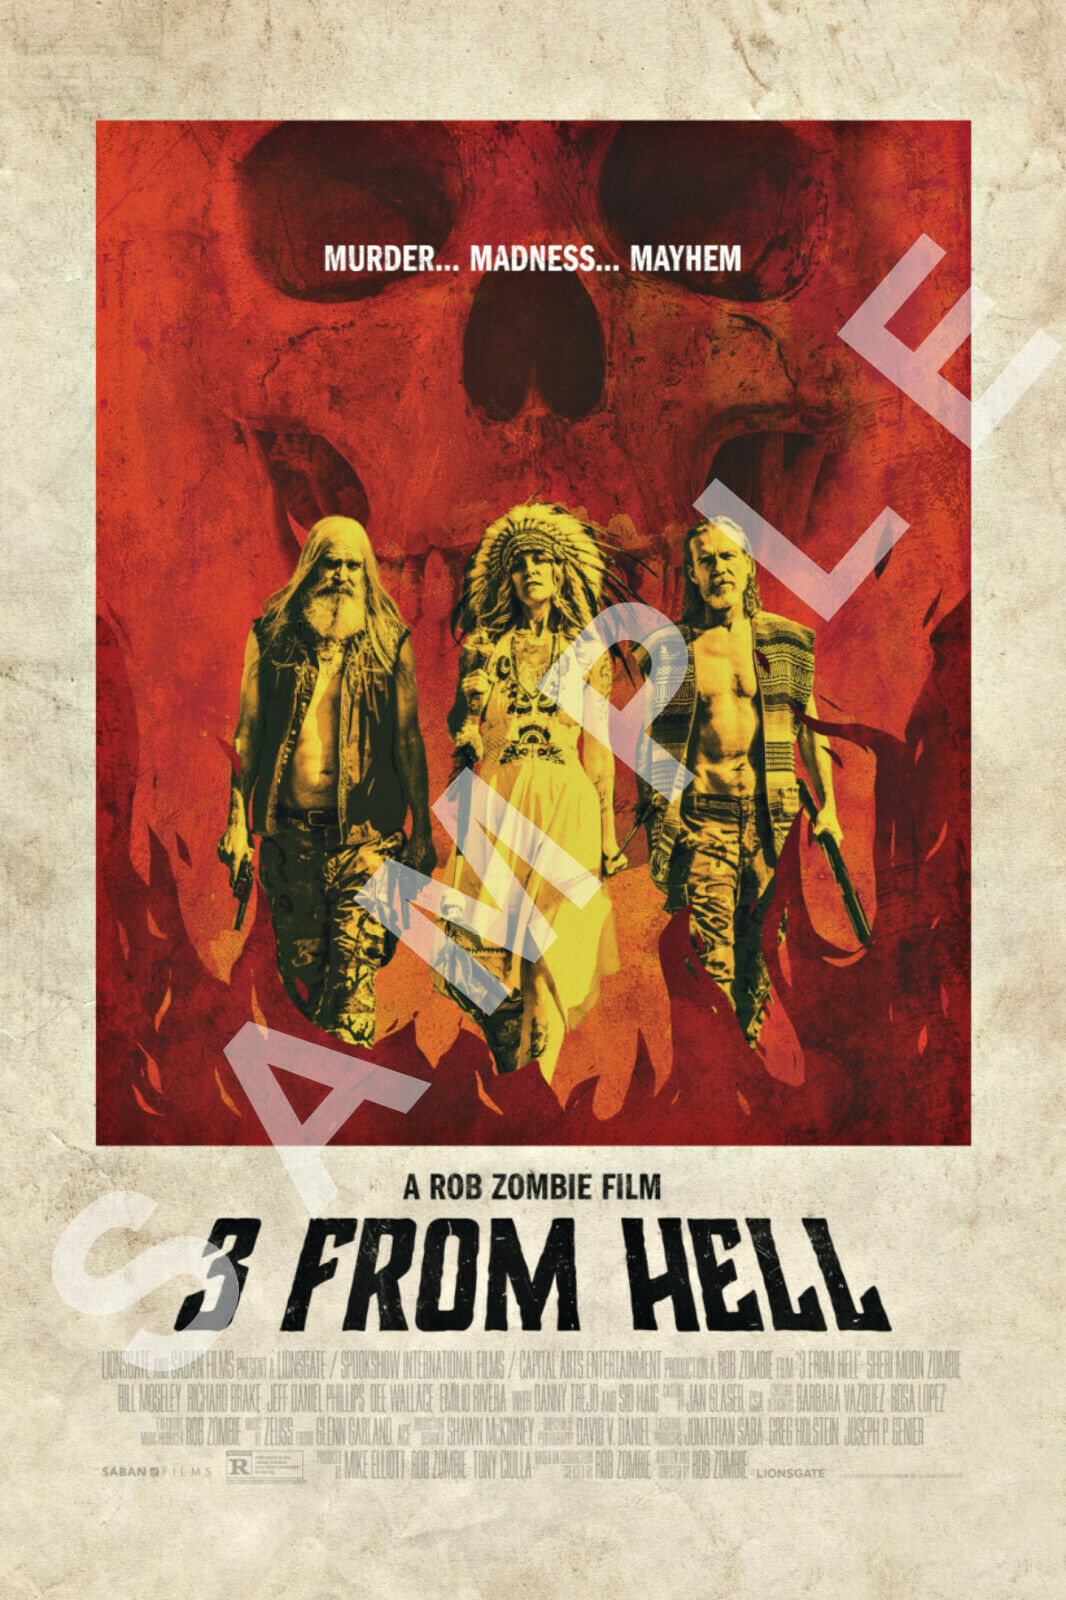 3 FROM HELL 12x18 MOVIE POSTER ROB ZOMBIE THE DEVILS REJECTS